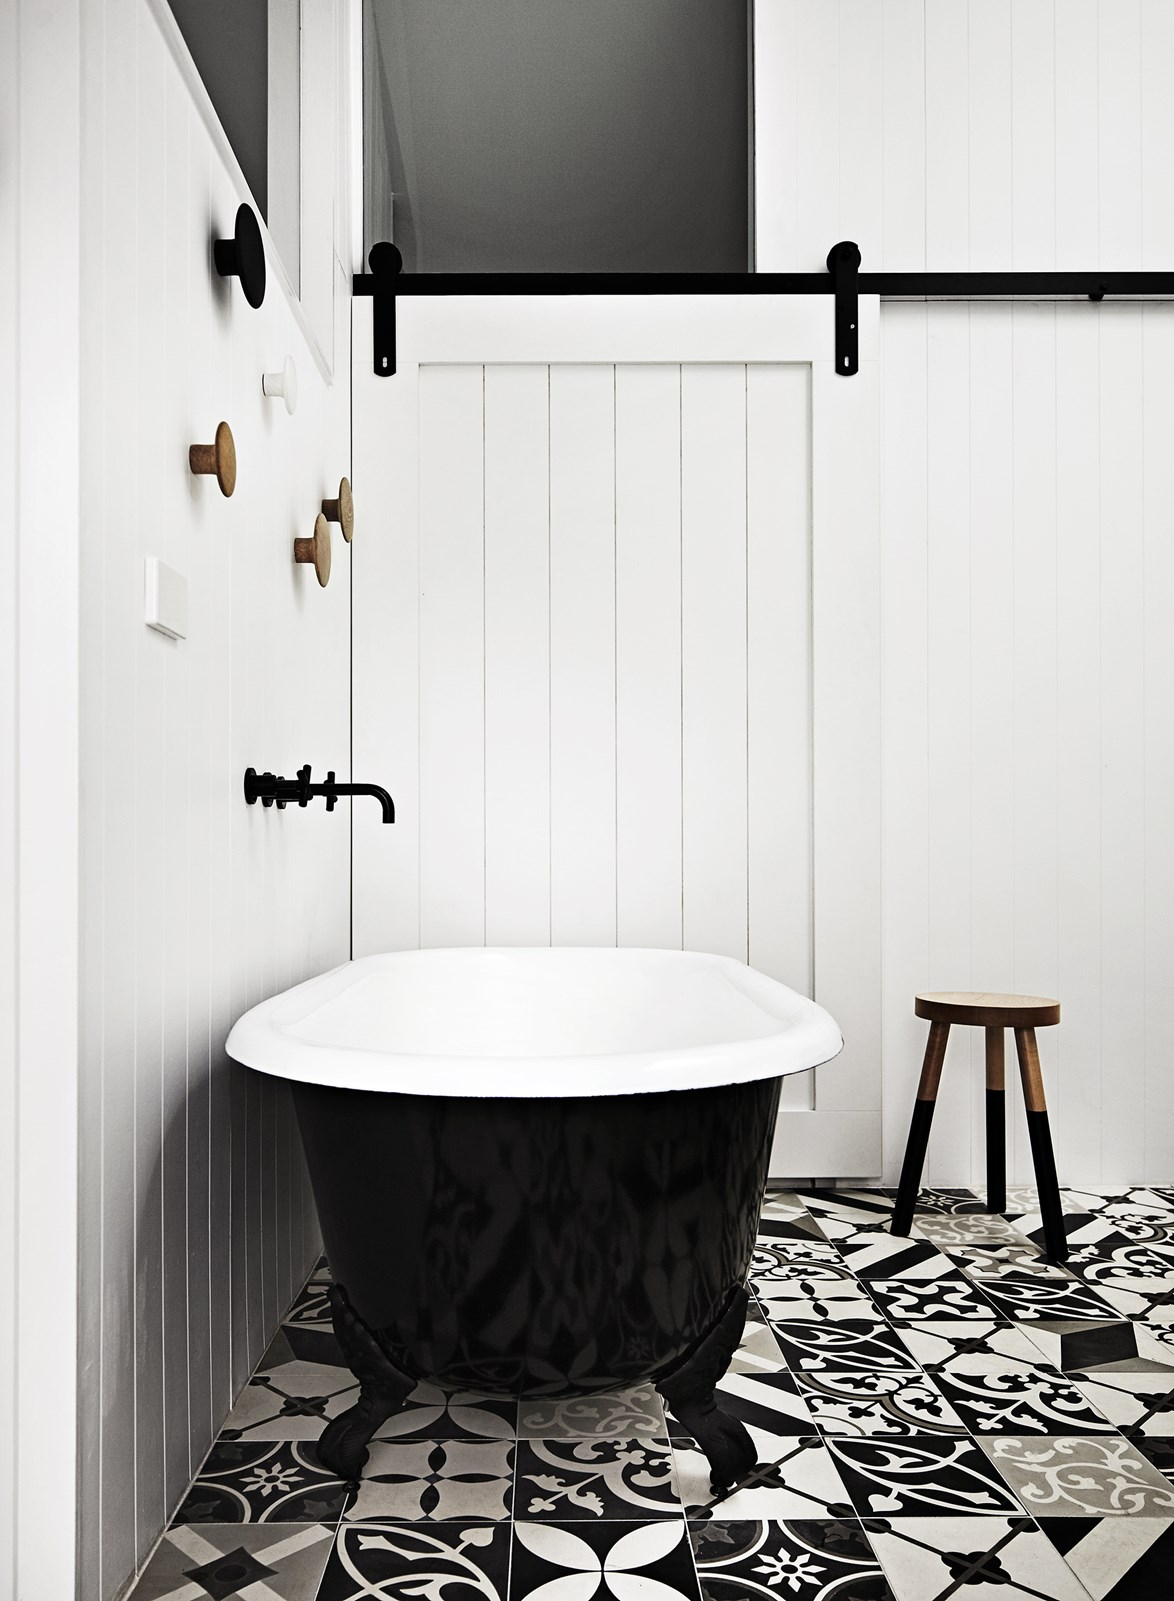 An unexpected hit of pattern is delivered in the monochromatic floor tiles from Bespoke Tile & Stone, in this classic monochrome bathroom.